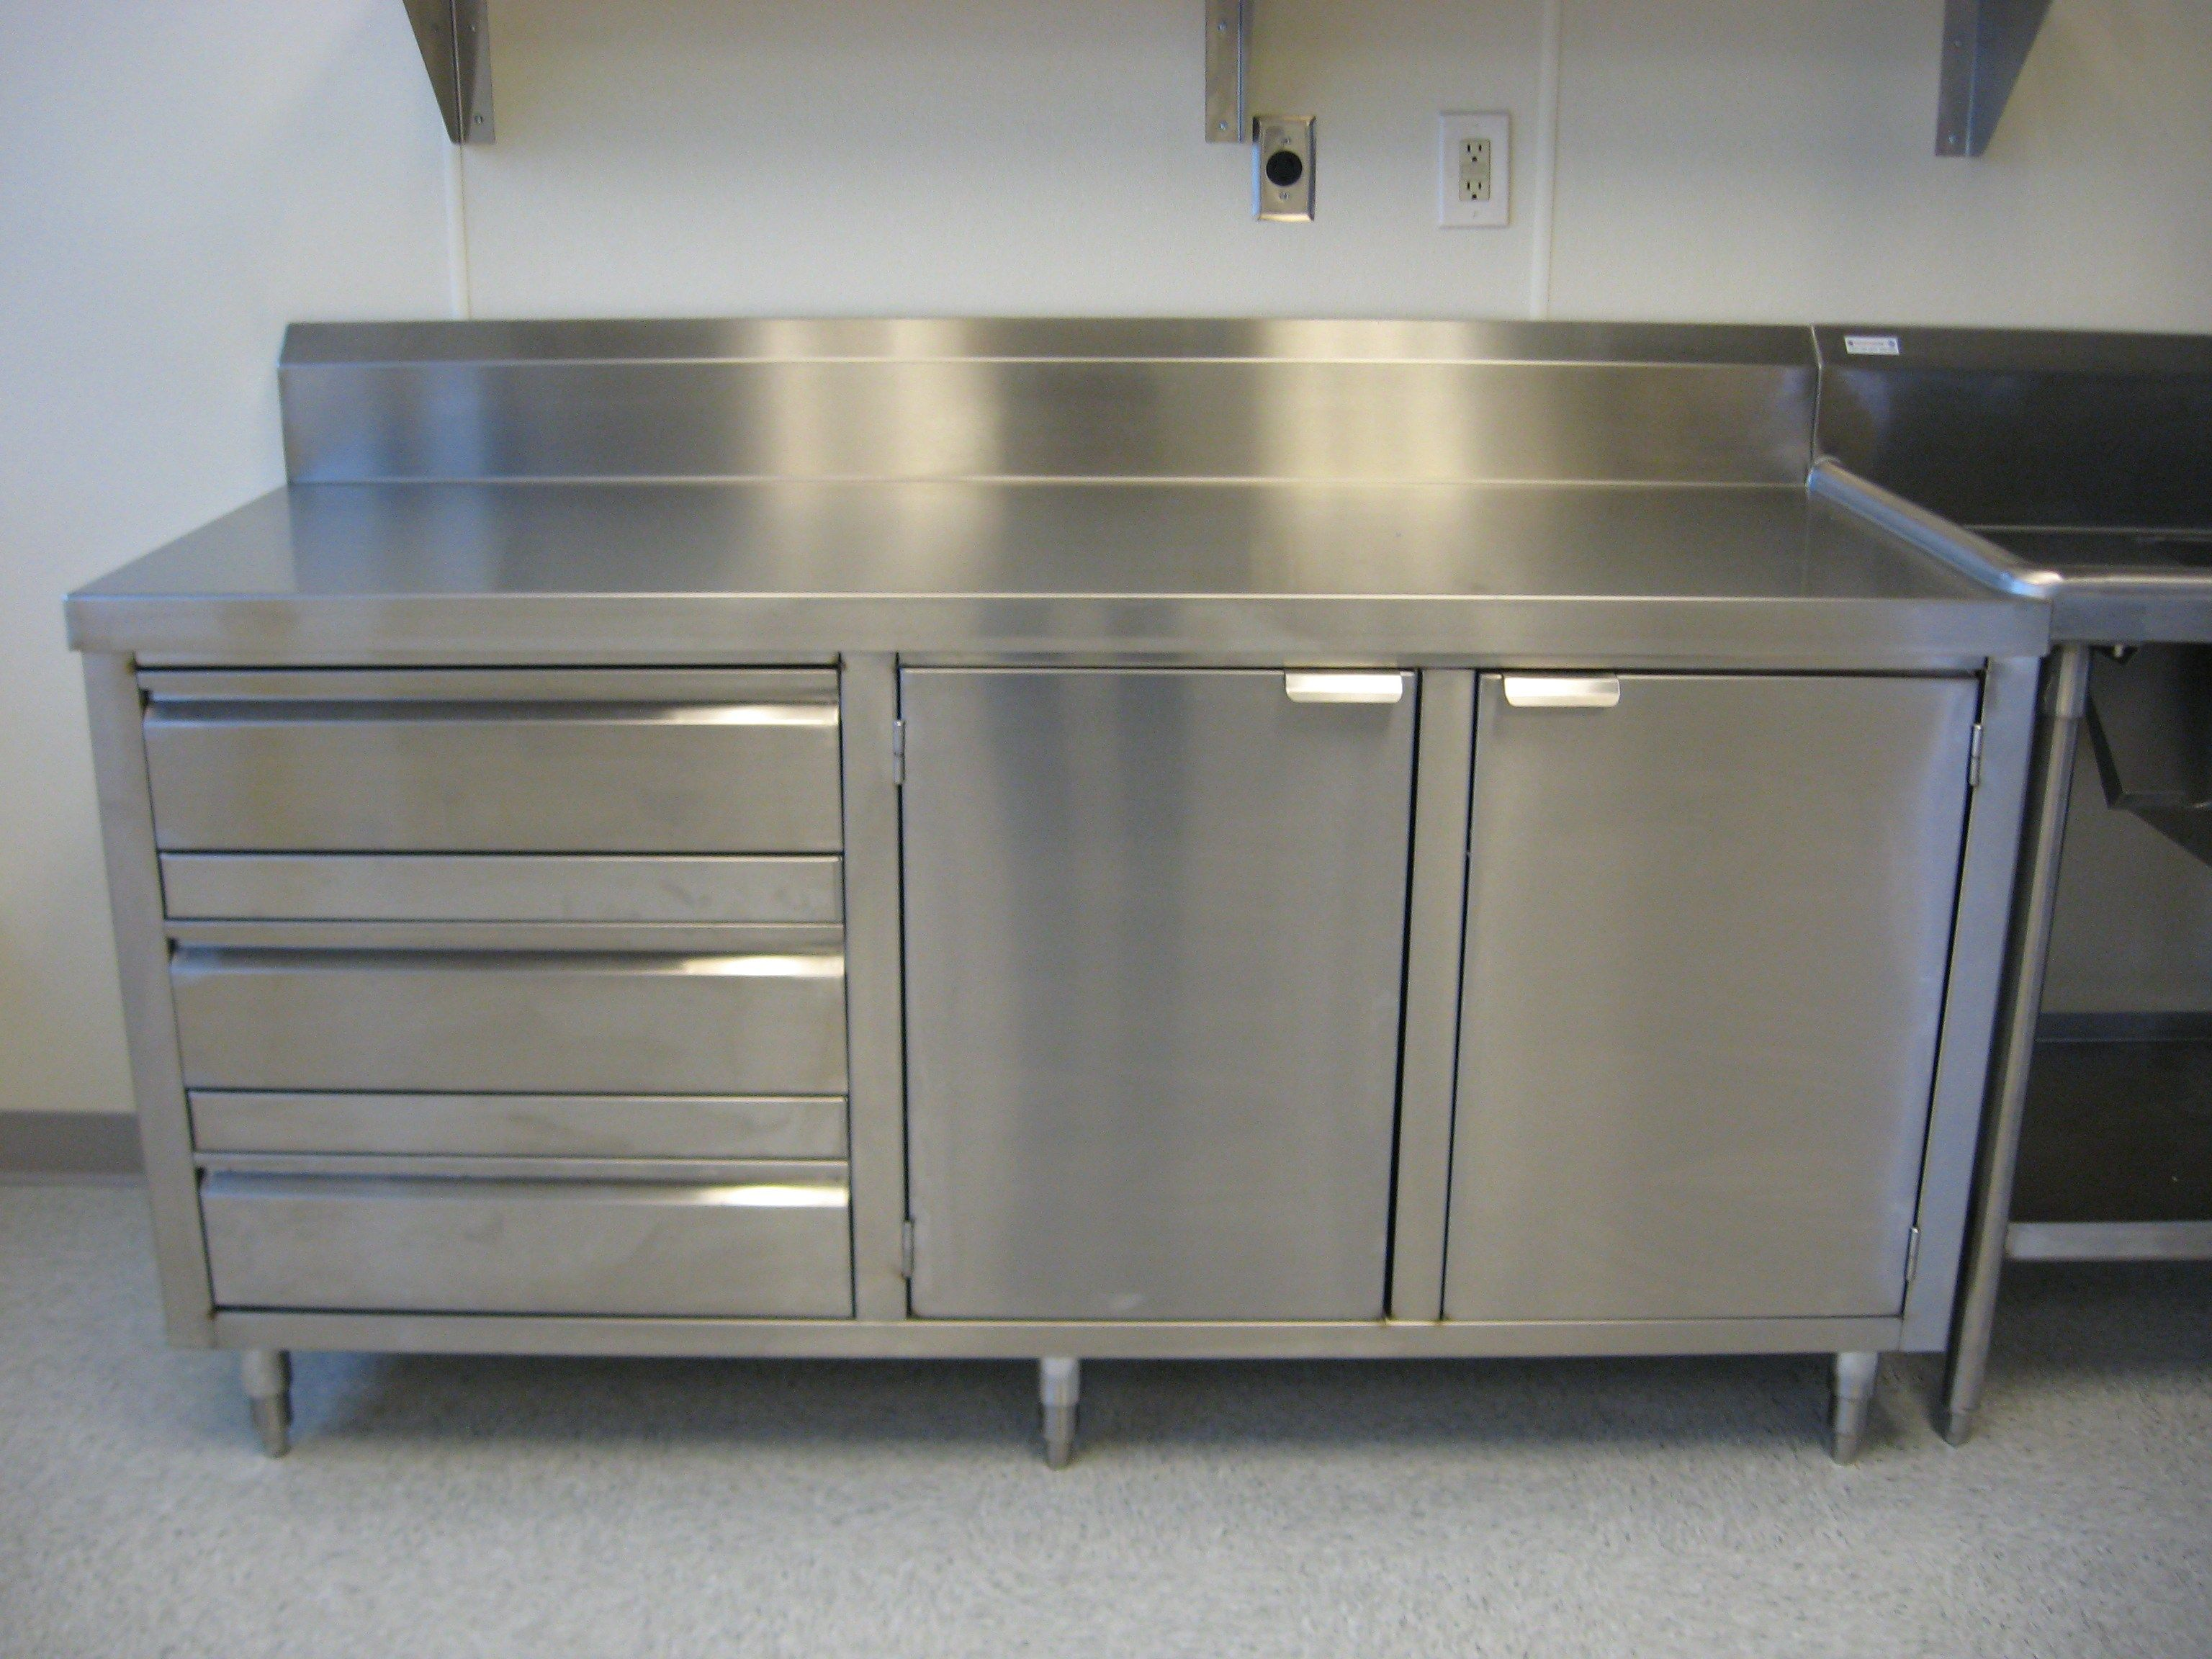 Stainless Steel Kitchen Cabinets Ikea Pictures Stainless Steel Kitchen Cabinets Ikea Kitchendecorate Net Stainless Steel Kitchen Meja Dapur Lemari Dapur Dapur